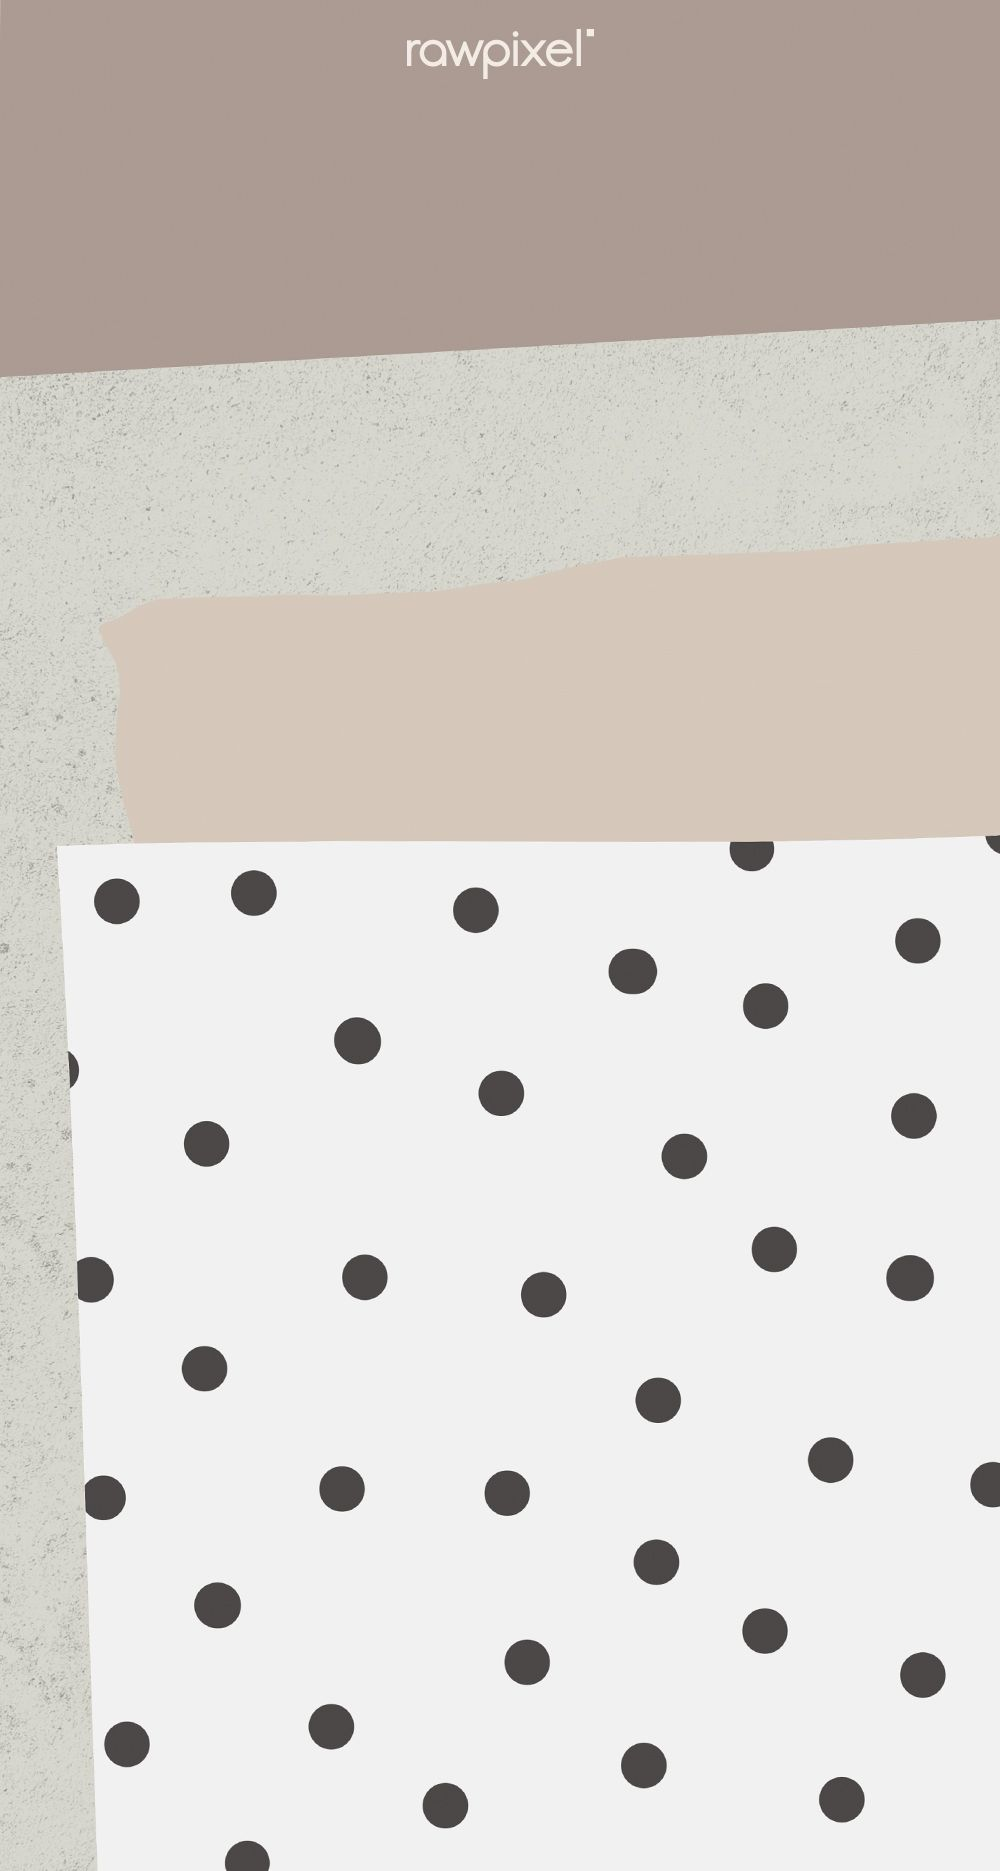 Stylish Memphis abstract background vector